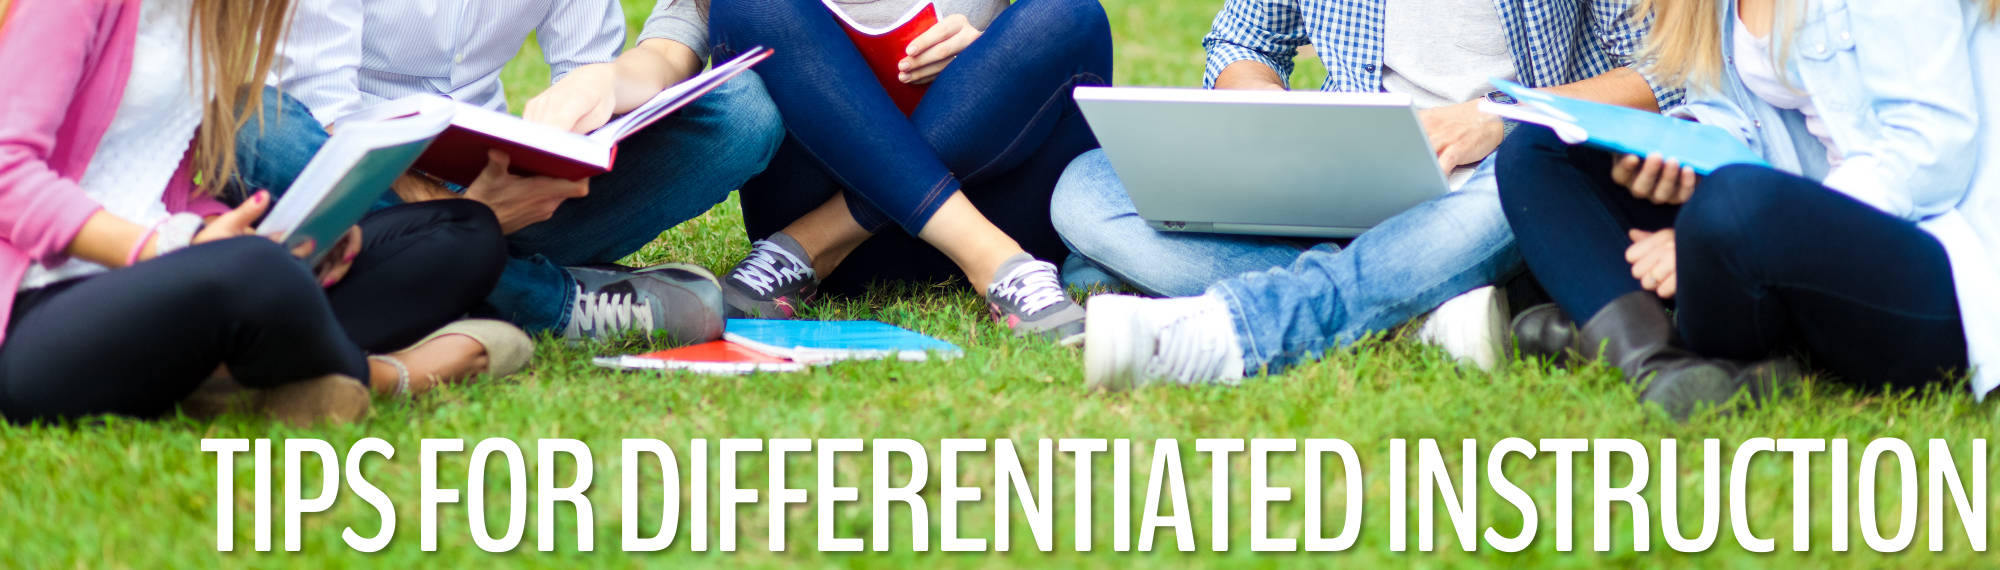 DifferentiatedTeachingHEADER